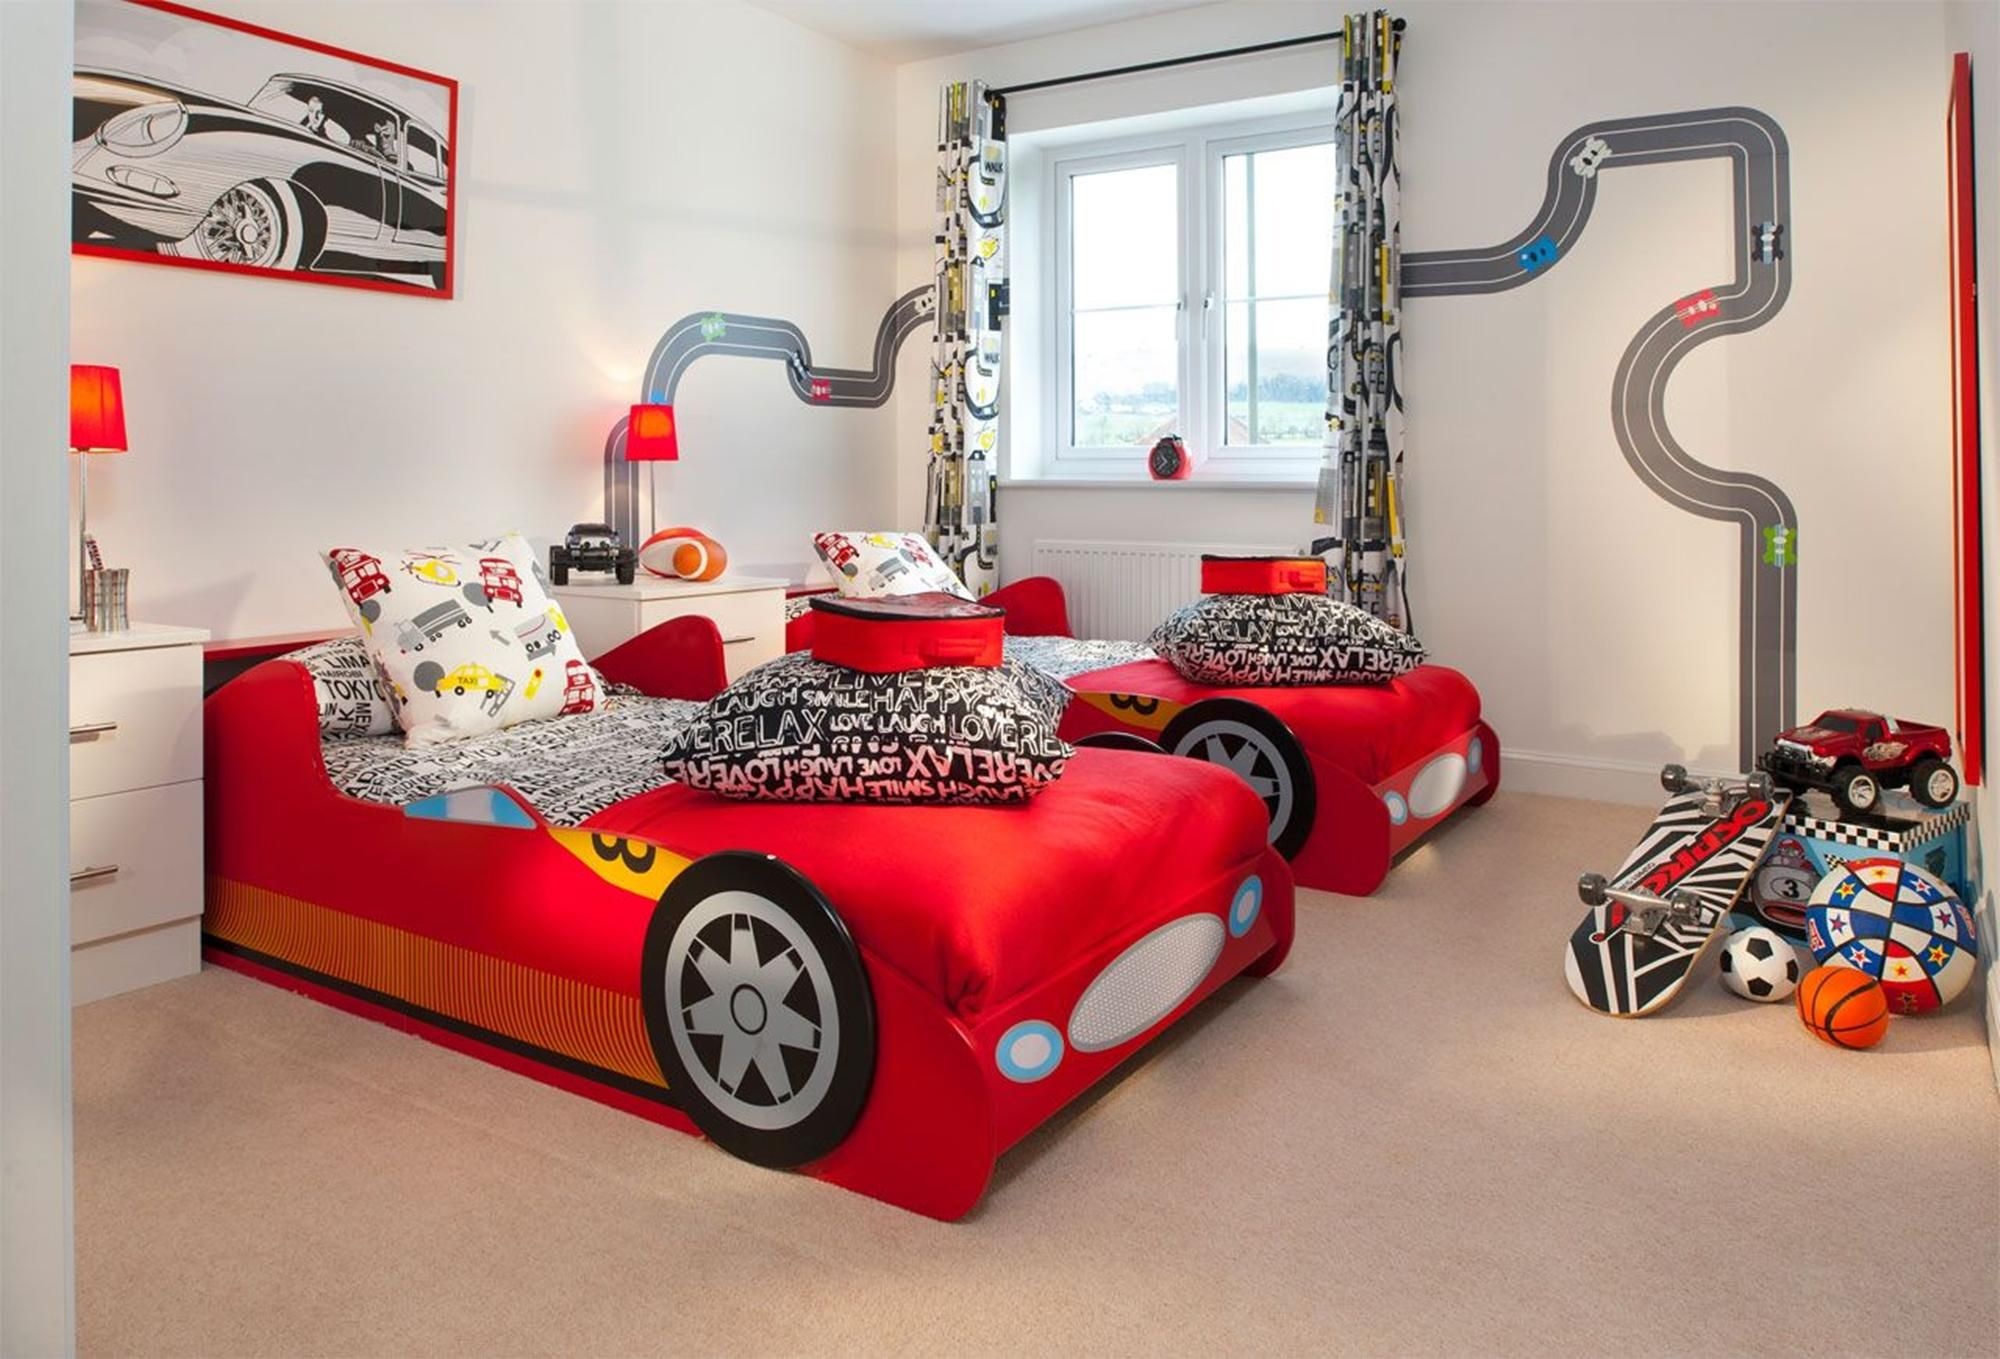 Boys car bedroom babys rooms pinterest boys car for Boy car bedroom ideas